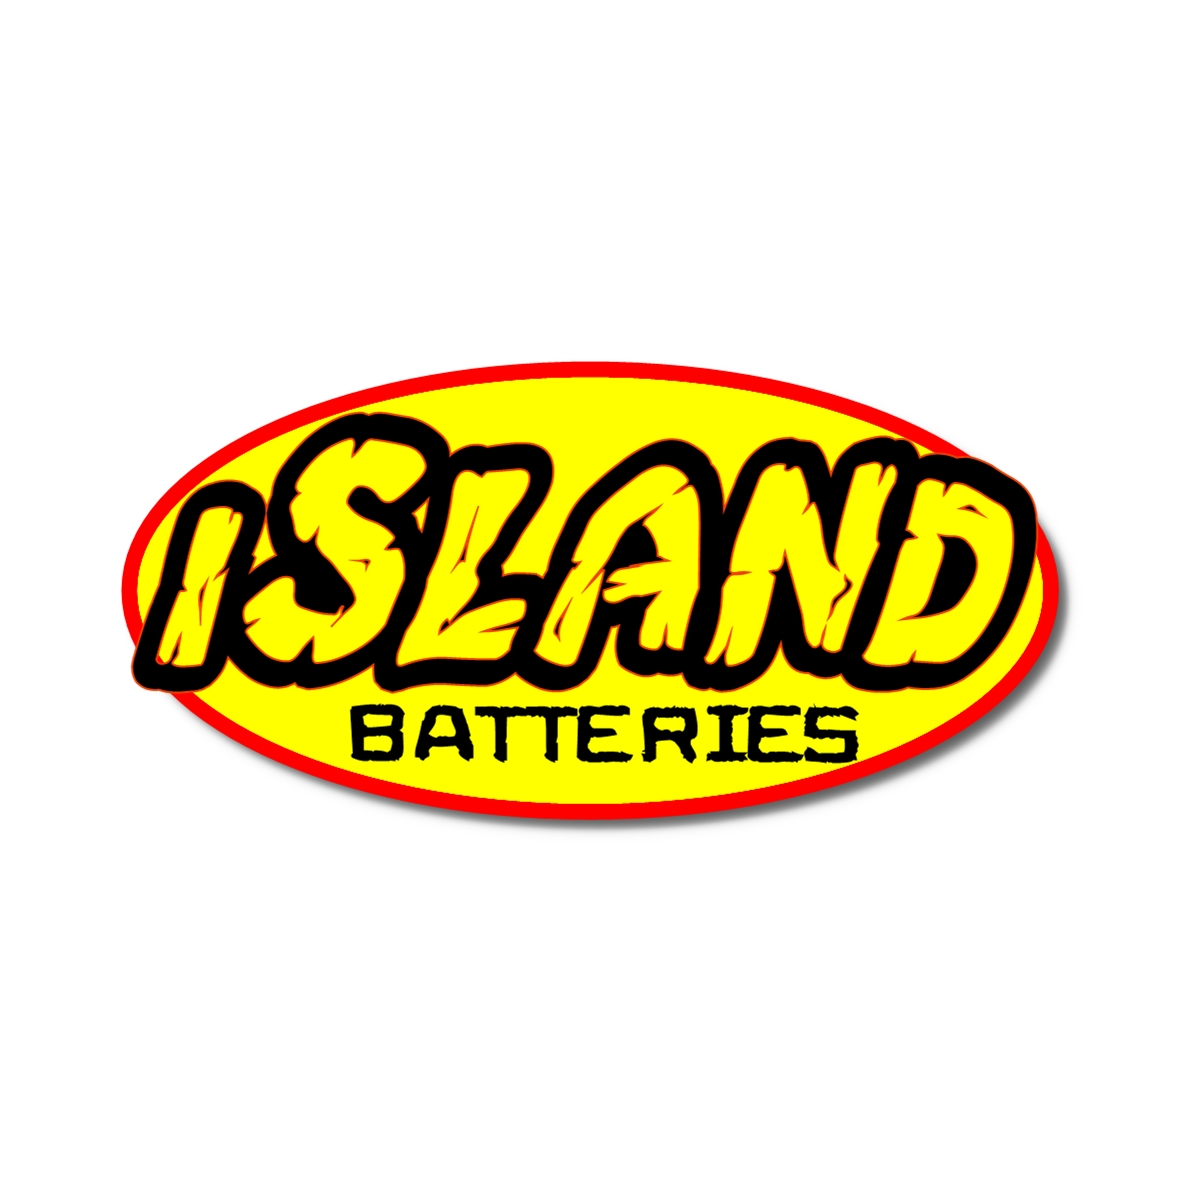 Logo Design by Joseph calunsag Cagaanan - Entry No. 31 in the Logo Design Contest Fun Logo Design for Island Batteries.